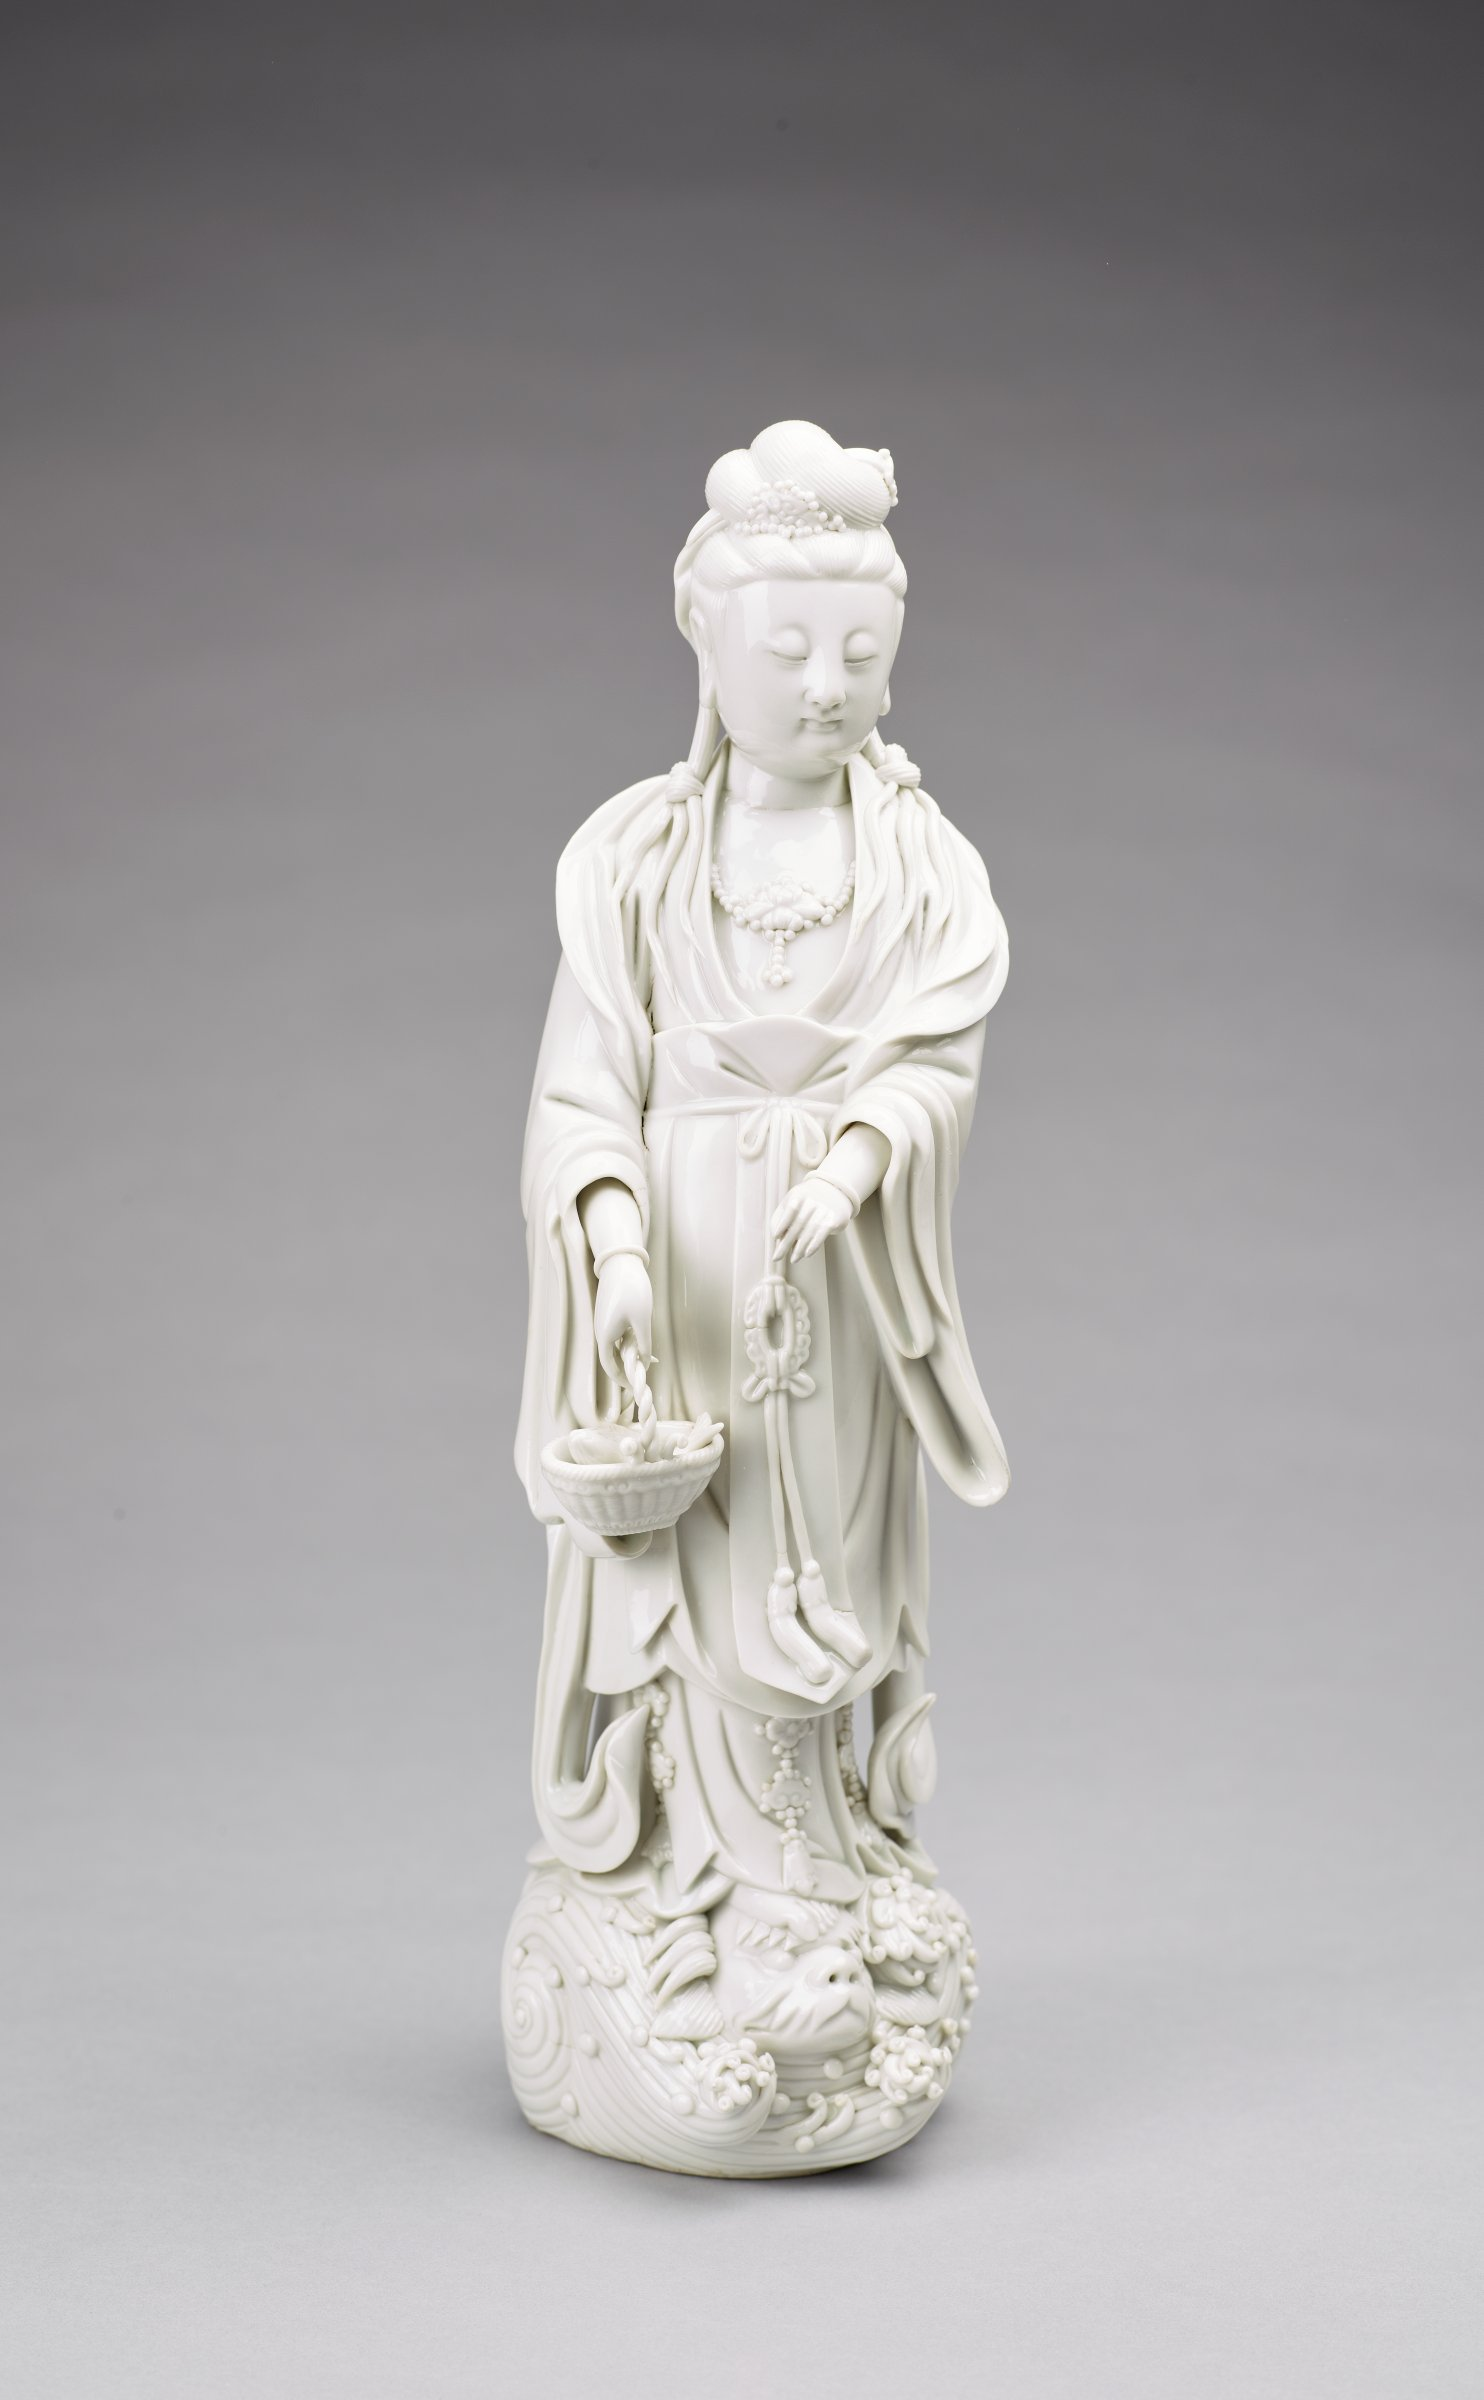 Standing figure of Guanyin on waves, holding a basket with a fish.